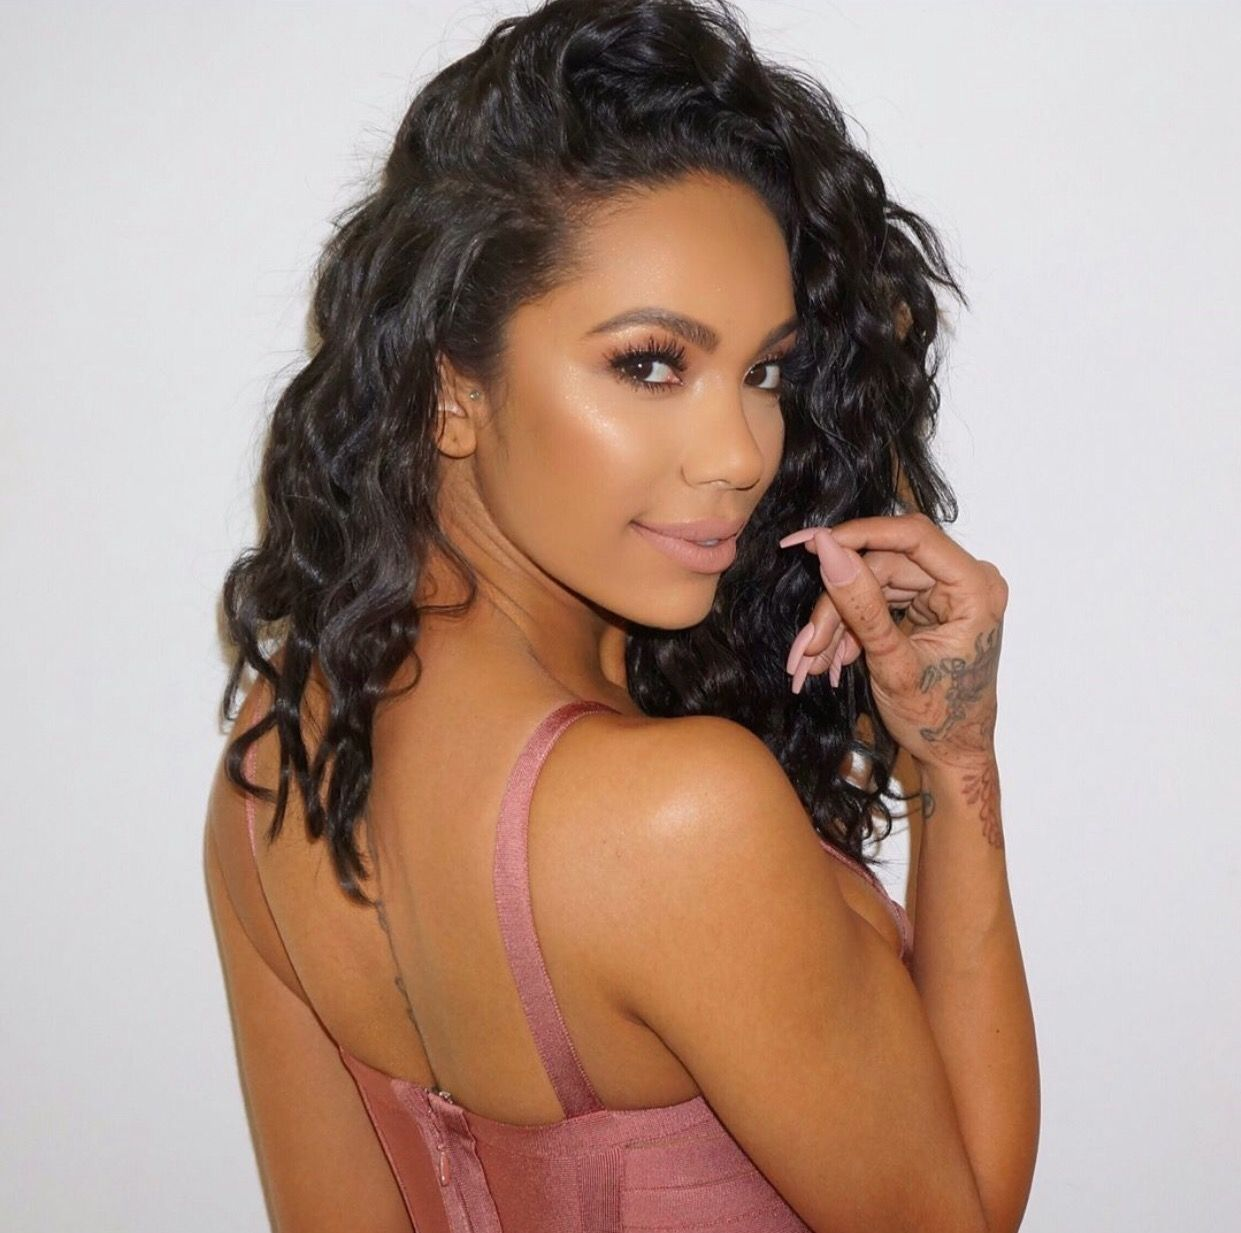 erica-mena-breaks-the-internet-with-the-latest-thirst-traps-see-her-pics-here